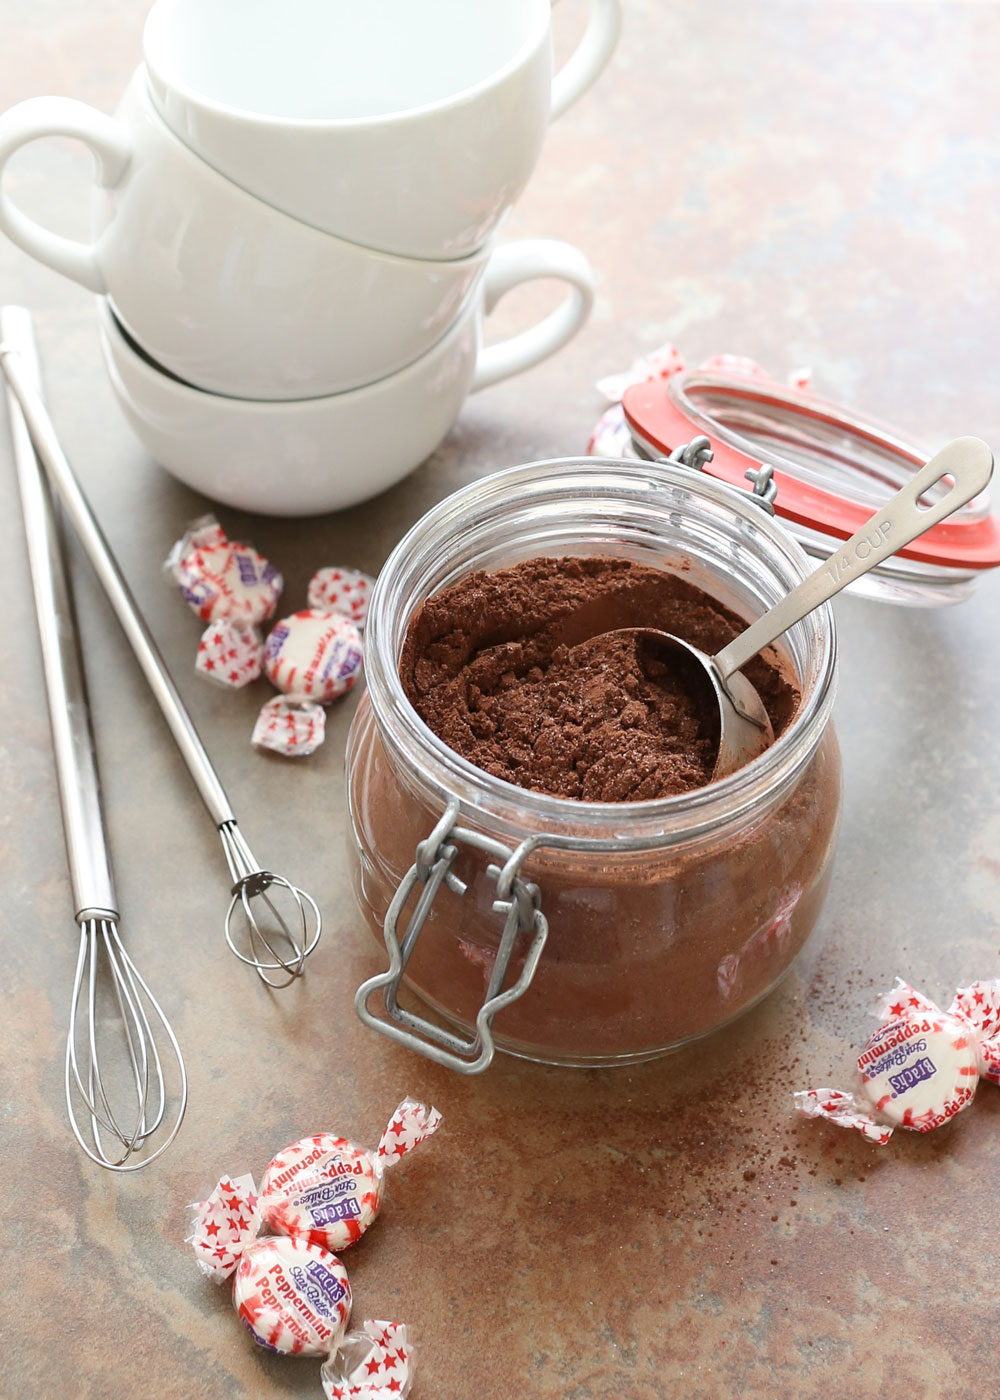 Homemade Peppermint Hot Chocolate Mix is perfect for gifts or any other occasion!